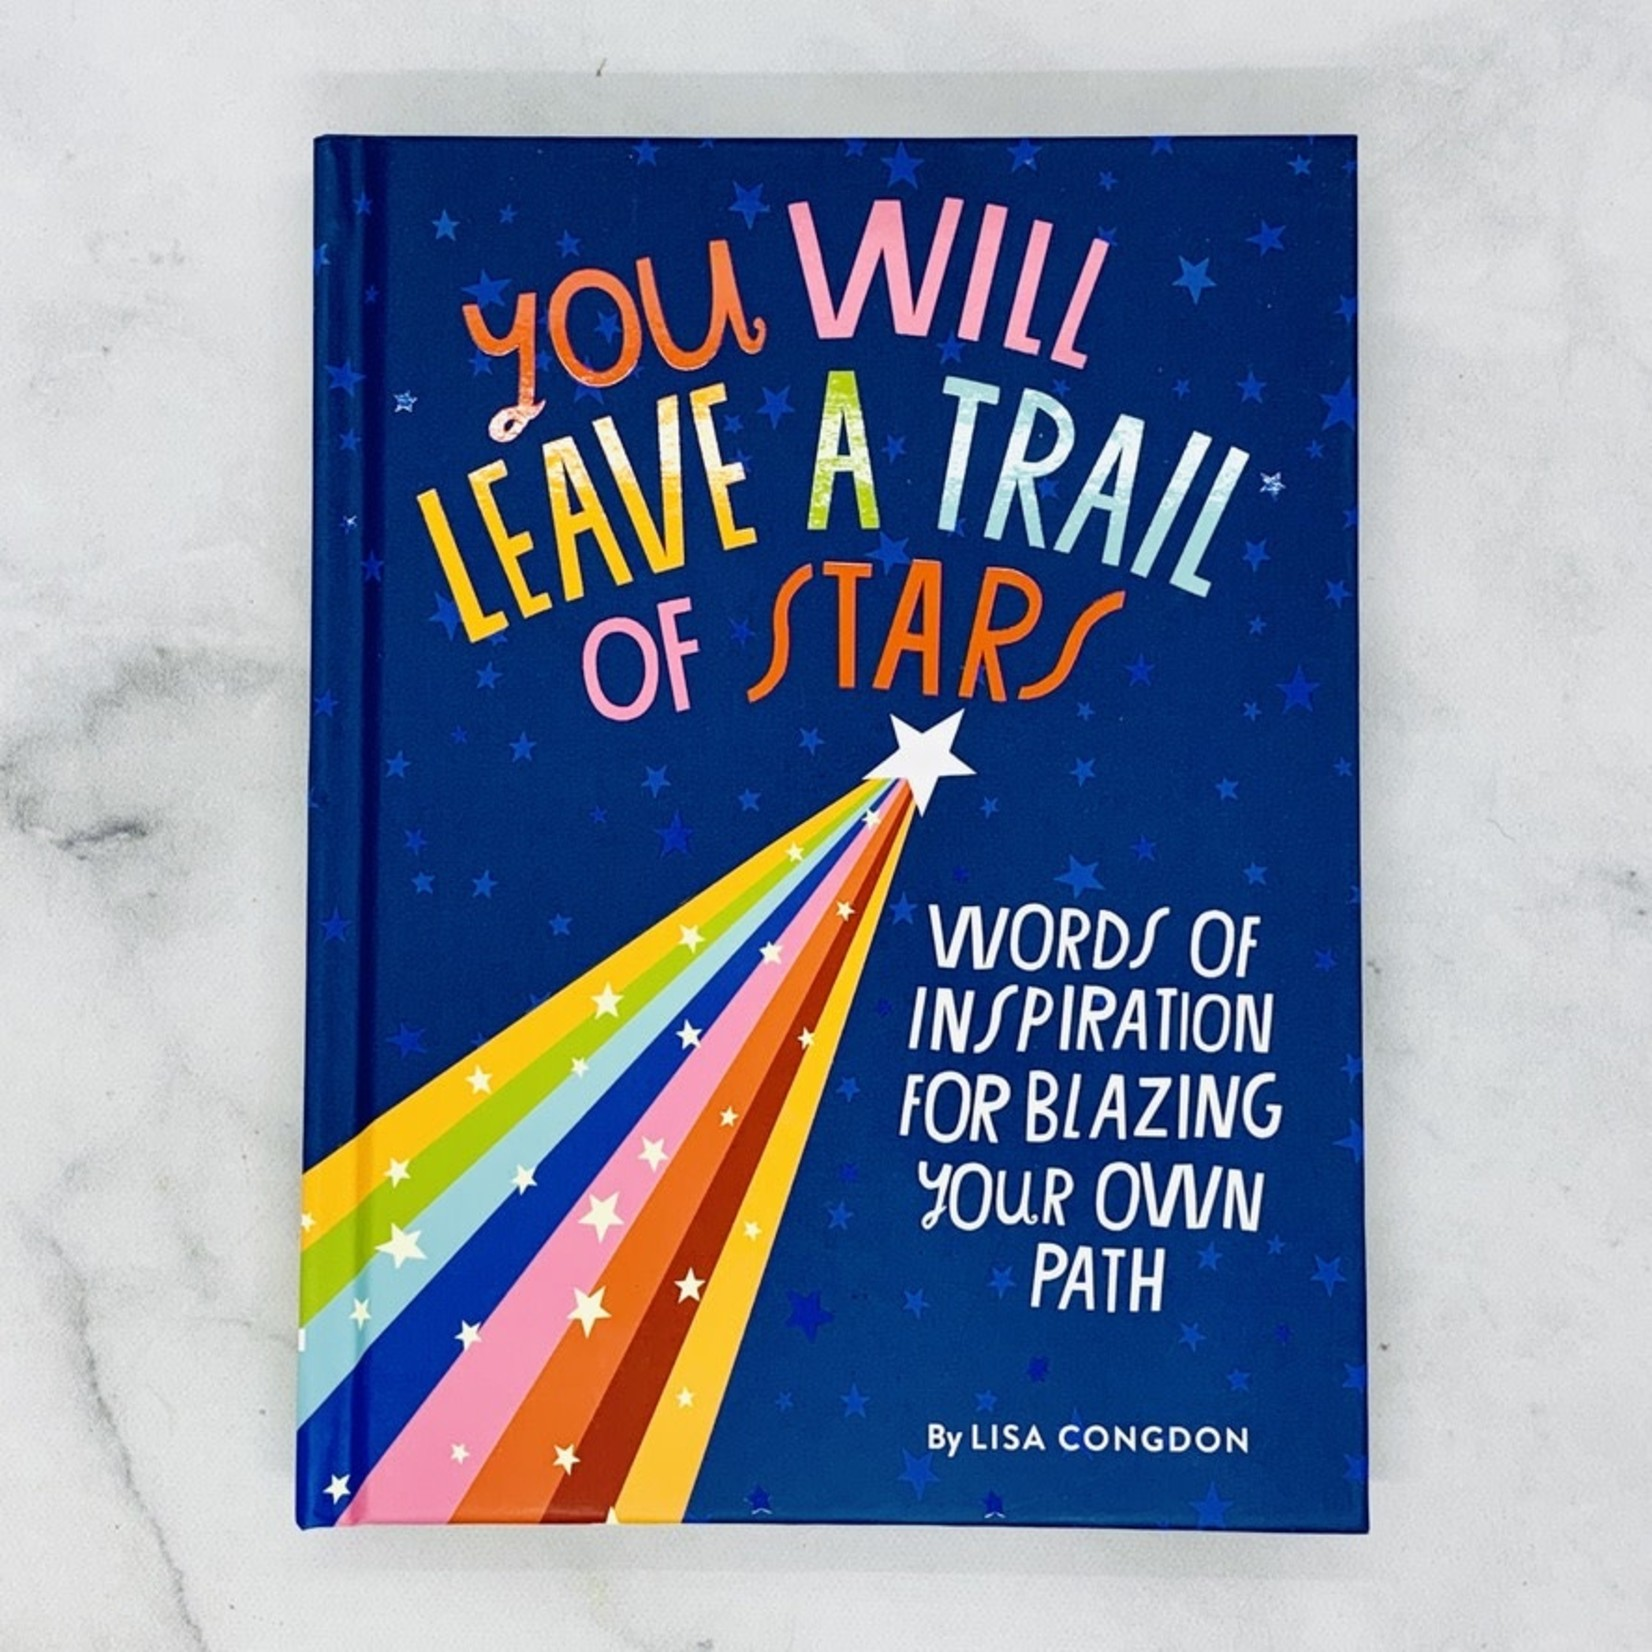 You Will Leave a Trail of Stars Words of Inspiration for Blazing Your Own Path